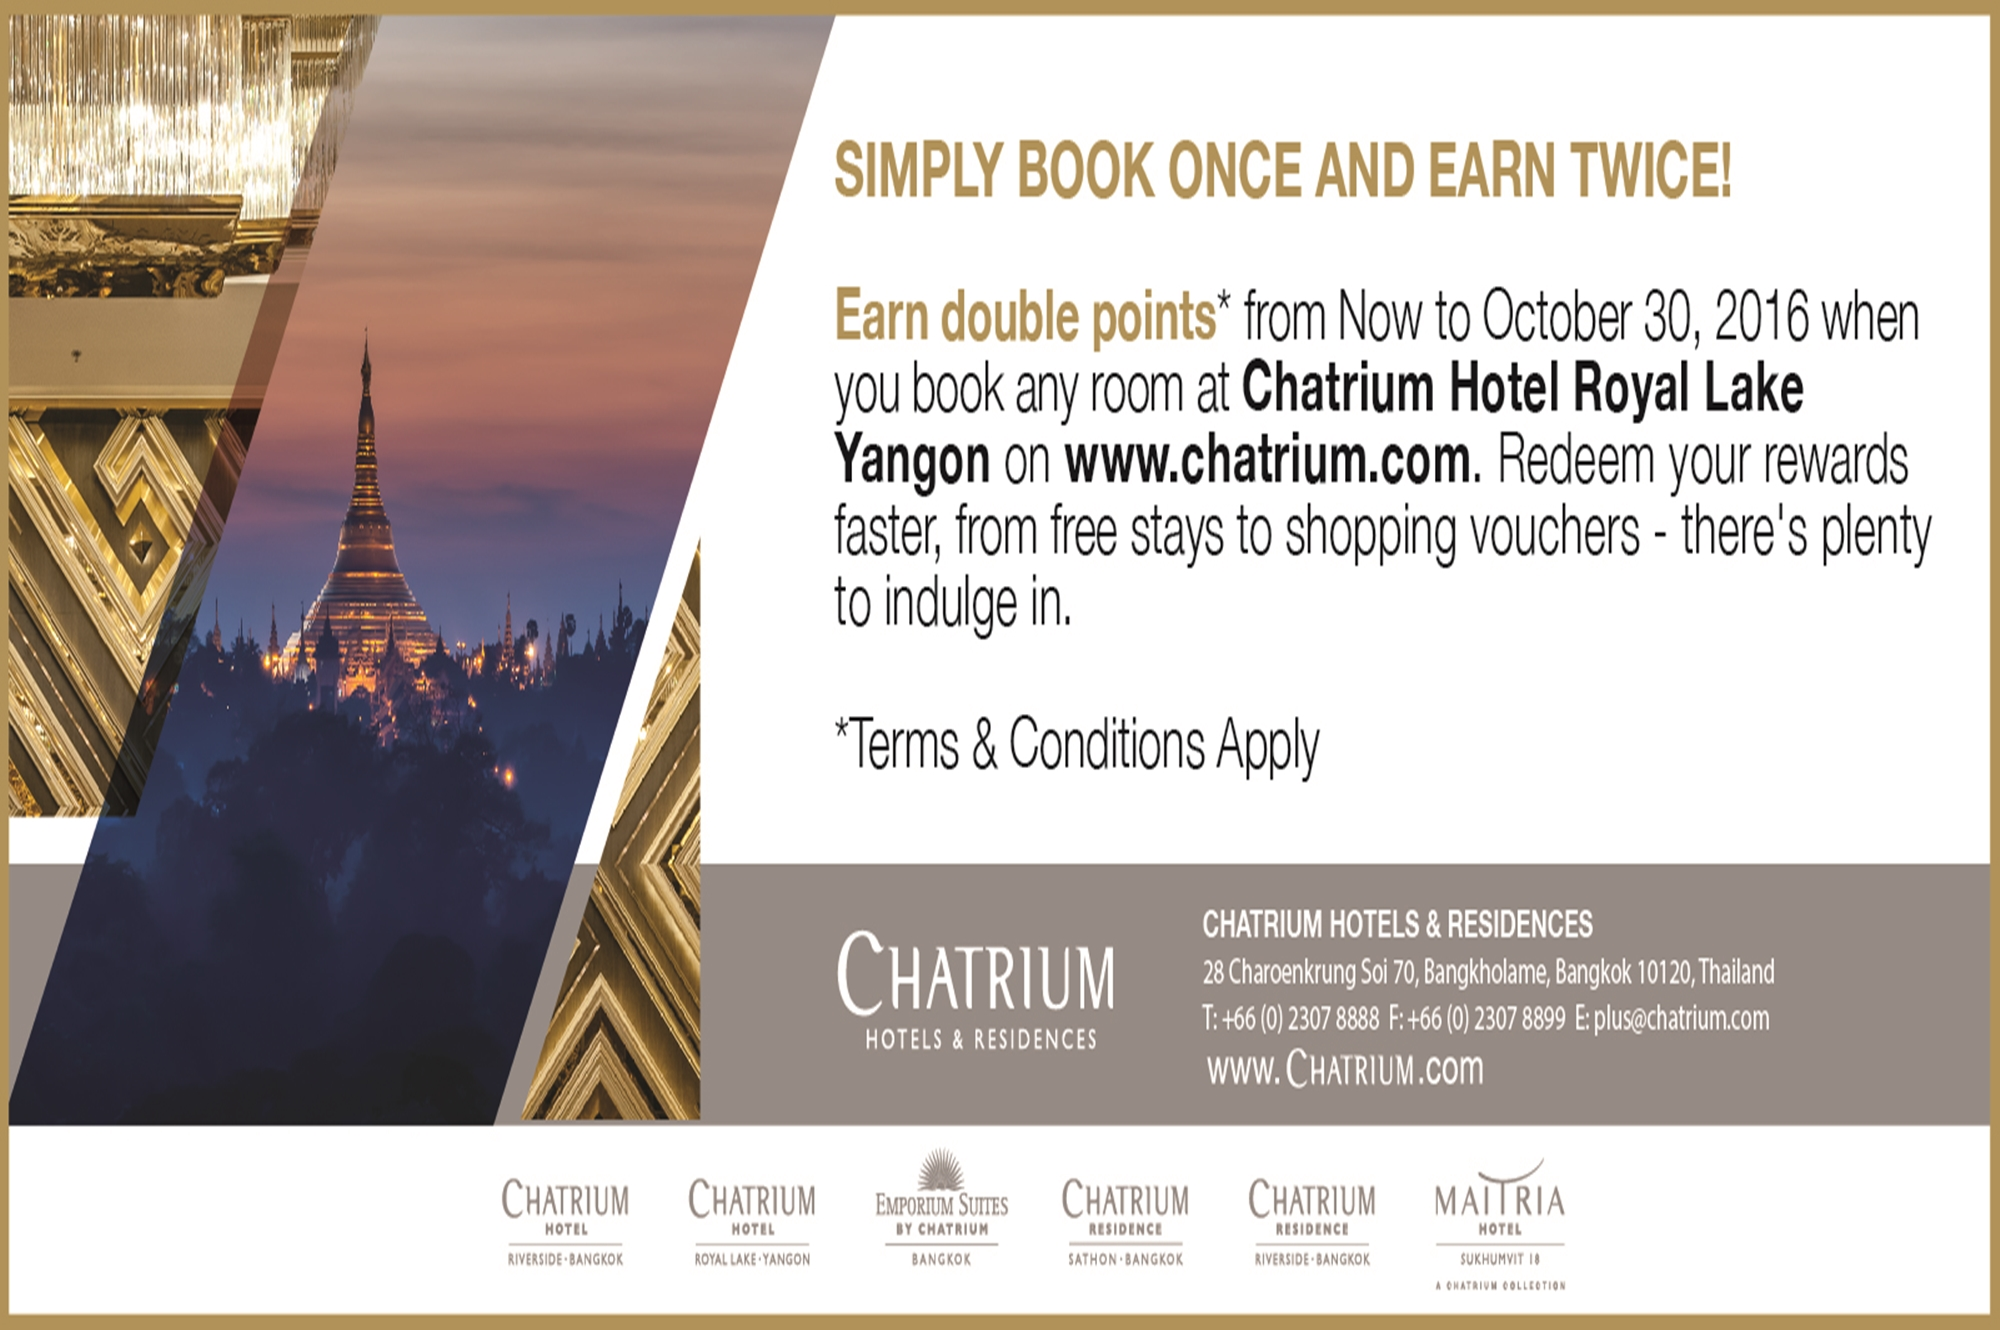 Book Once Earn Twice Offer at Chatrium Hotel Royal Lake Yangon